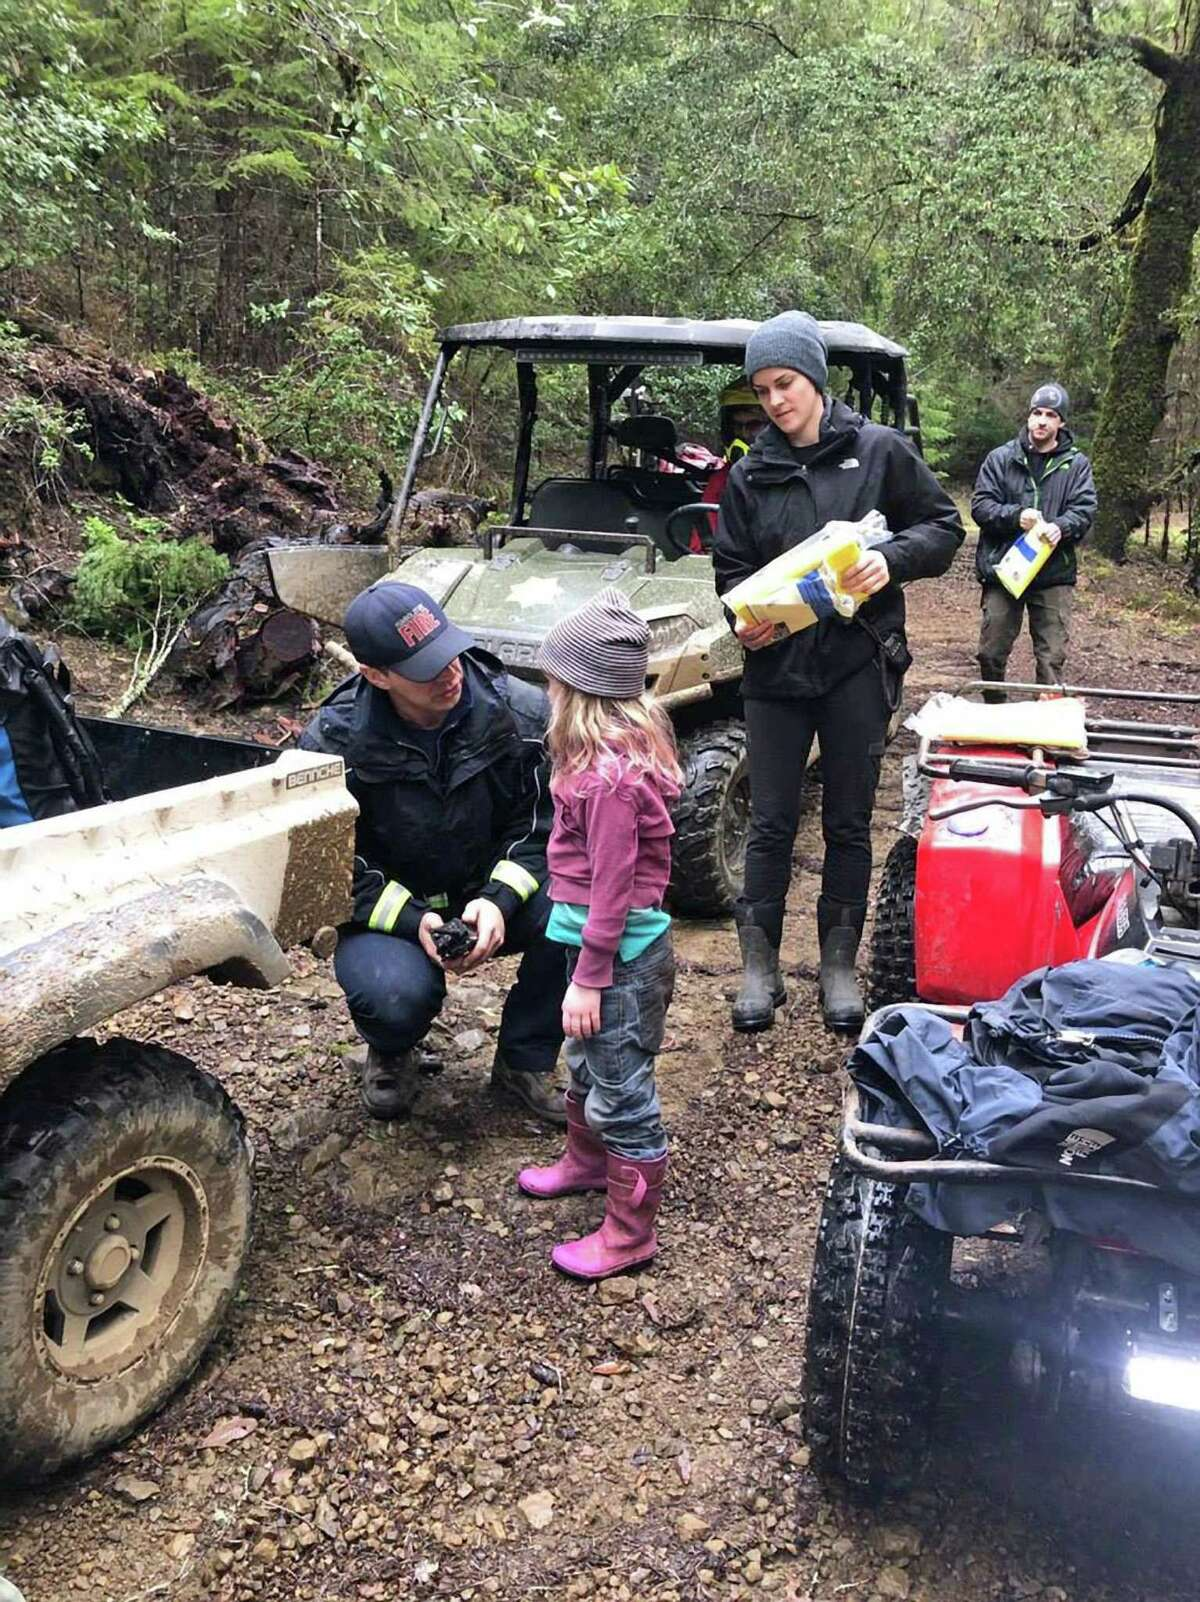 Caroline Carrico is assisted by first responders after she and her sister were found by volunteer firefighters in a park 1.4 miles from their home in Humboldt County. They sisters had been missing for nearly two days. Photo by Humboldt County Sheriff's Office